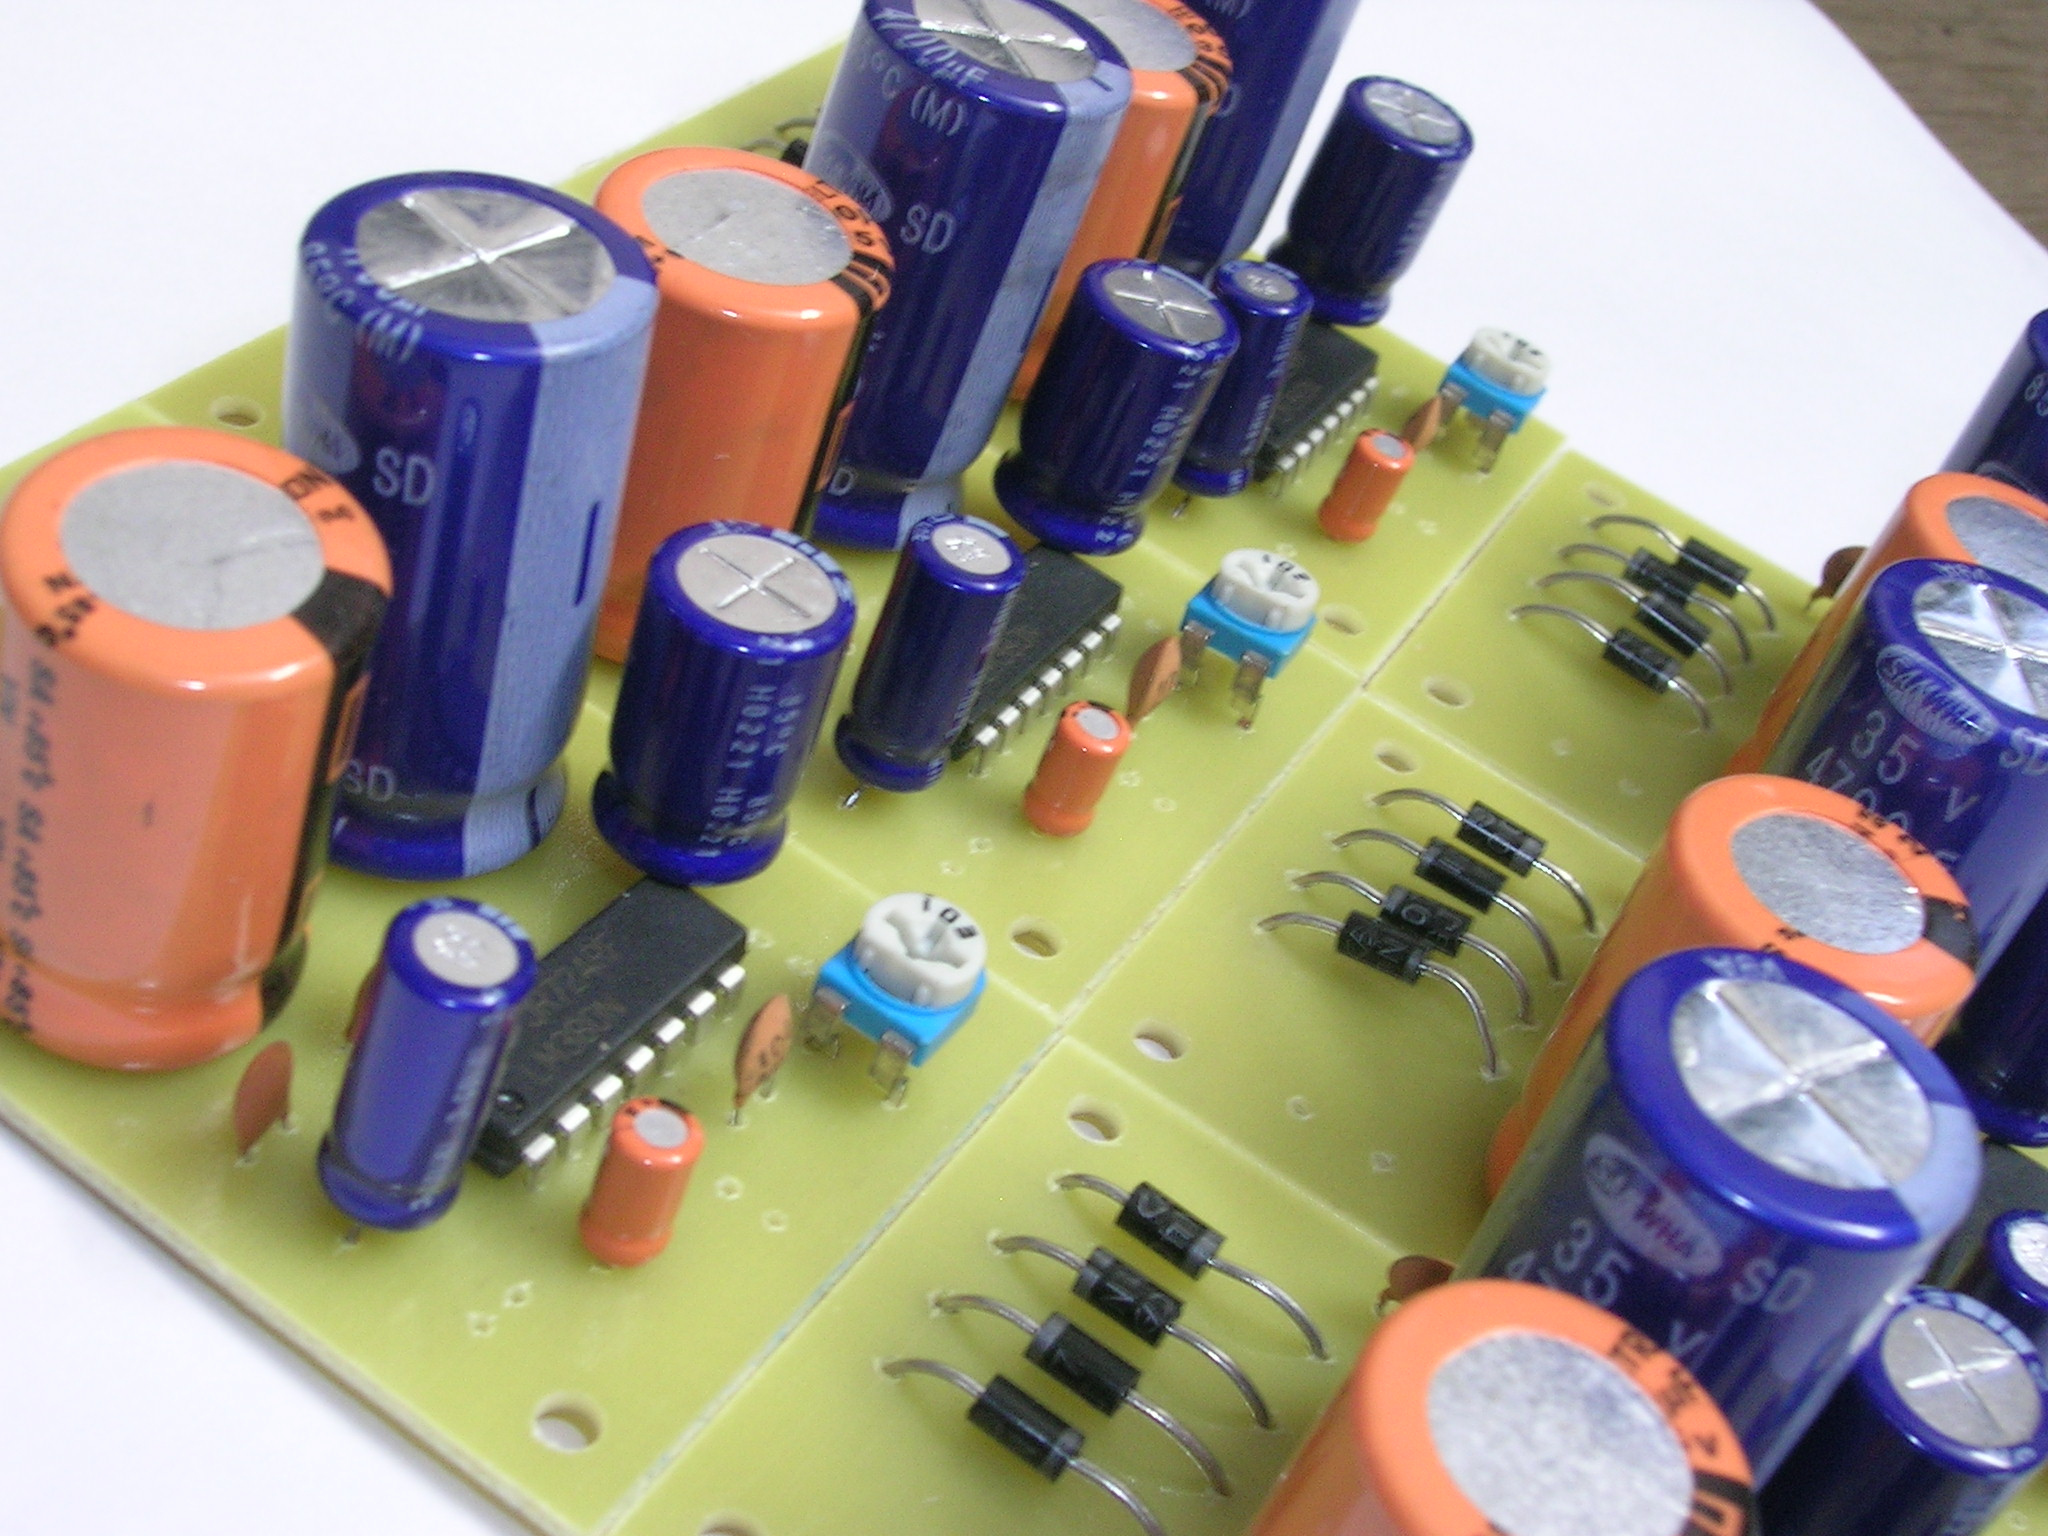 Lm380 Based Audio Amp Mohit Bhoite Power Amplifier Circuit Leave